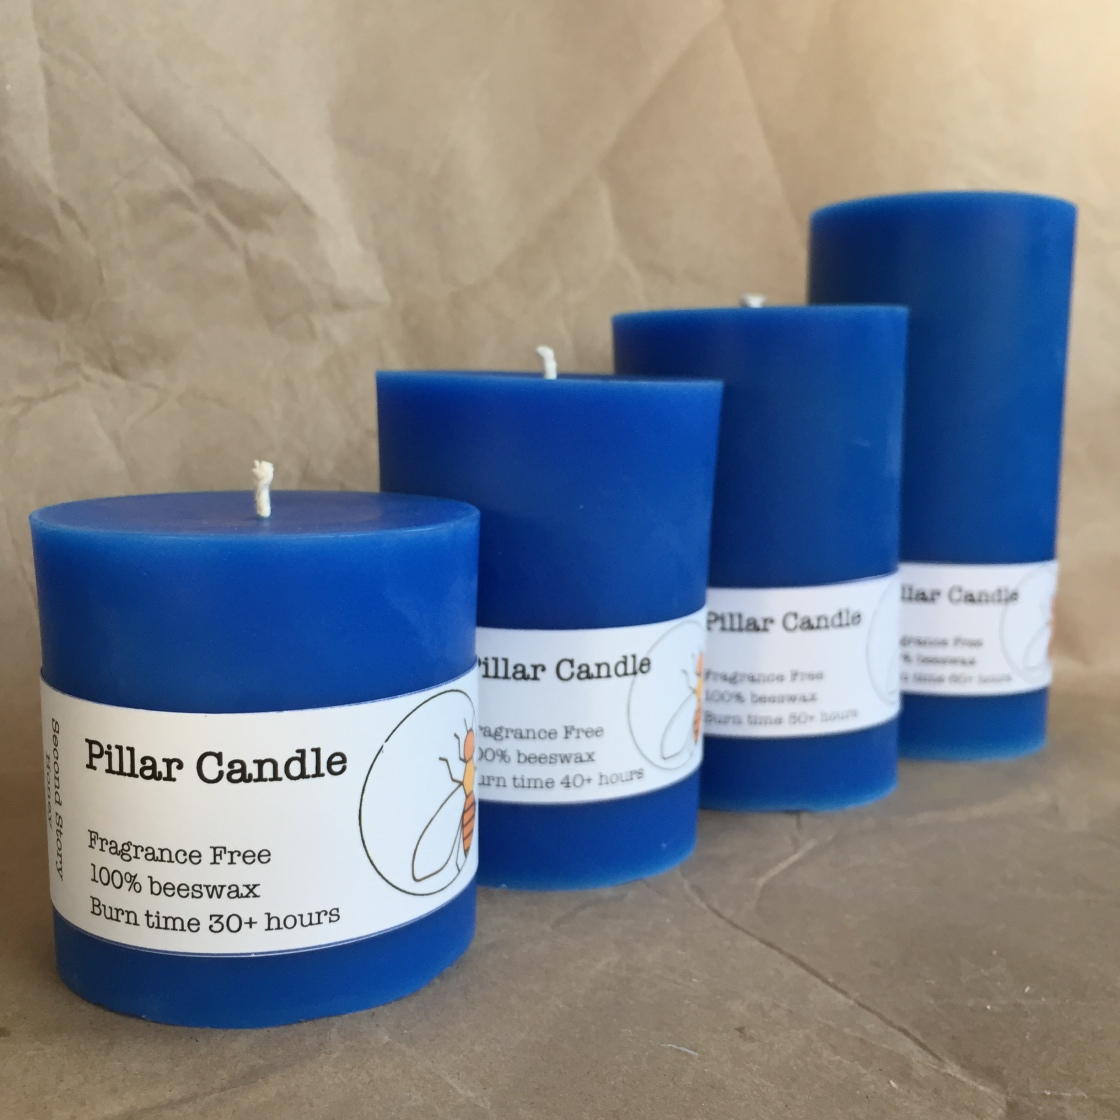 4 blue pillar candles ranging in height from 3 to 6 inches